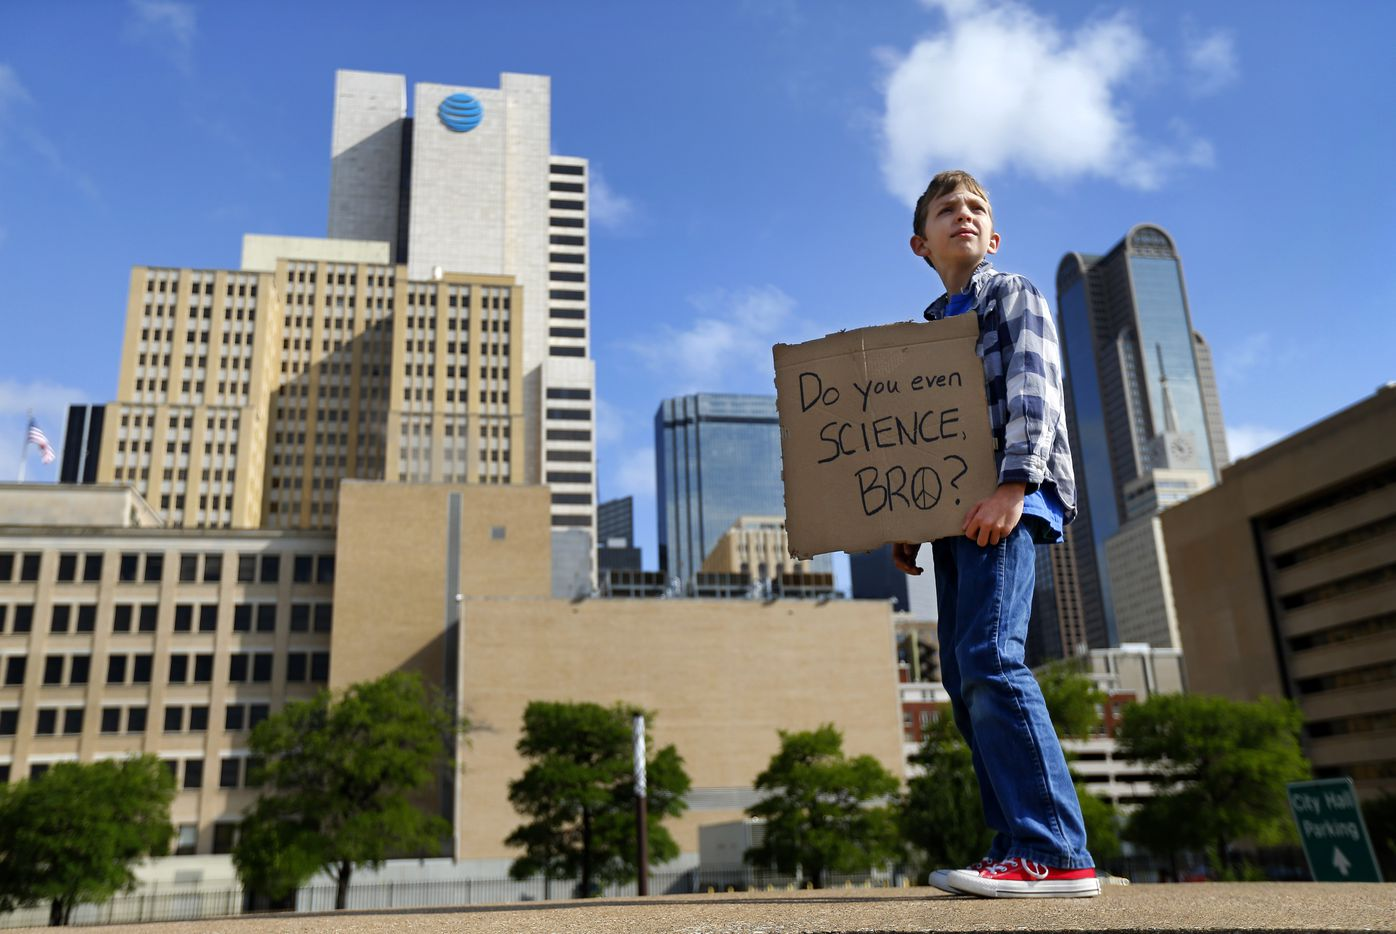 Martin Thomas, 10, of Dallas carries his homemade, pizza box sign as people gathered in downtown Dallas for the March For Science rally that kicked off at Dallas City Hall and ended at Fair Park's Earth Day celebration, Saturday, April 22, 2017. (Tom Fox/The Dallas Morning News)